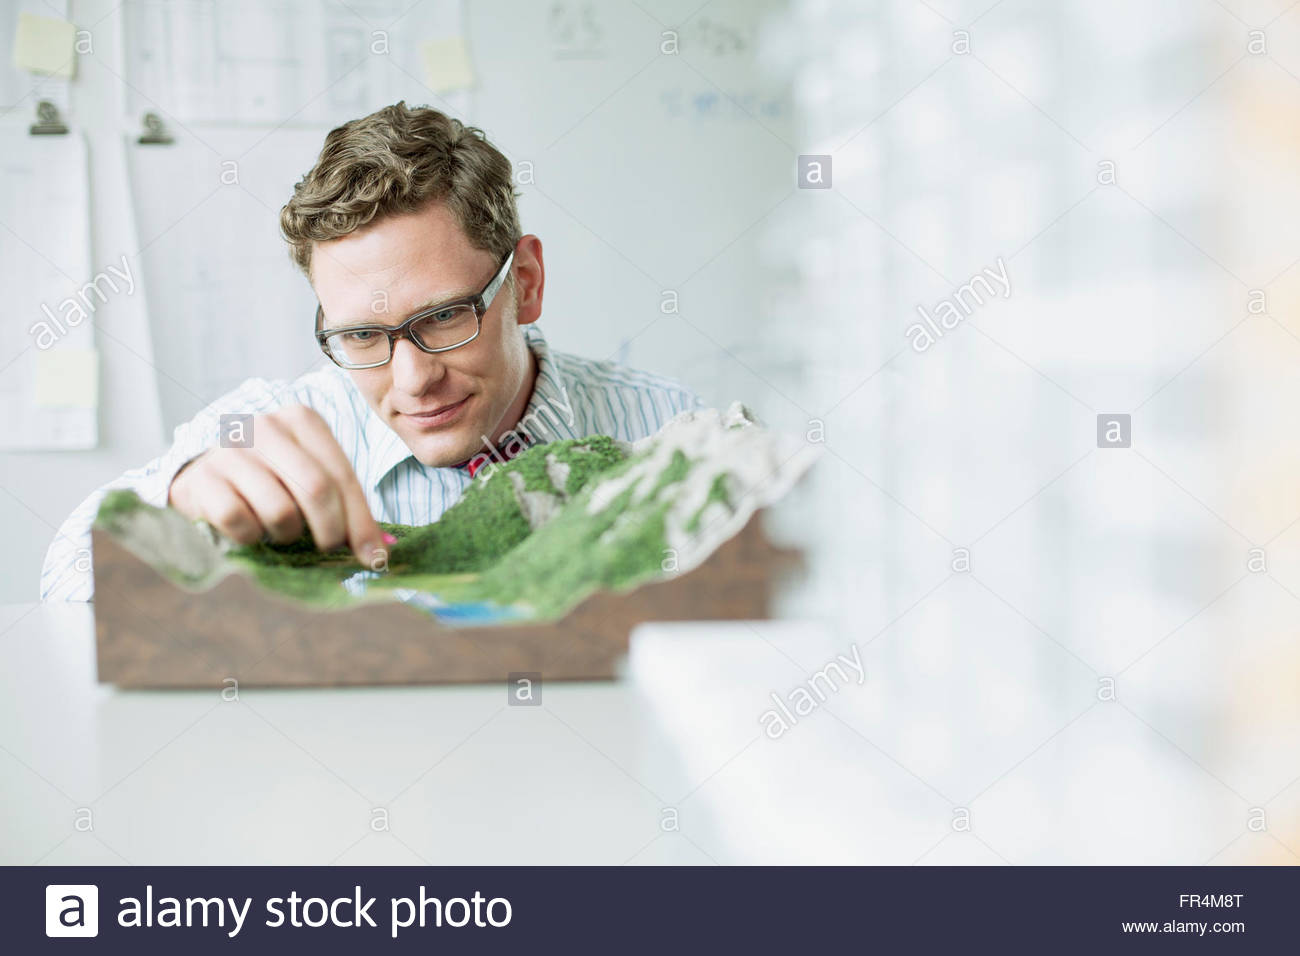 mid-adult architect working on topographical model - Stock Image